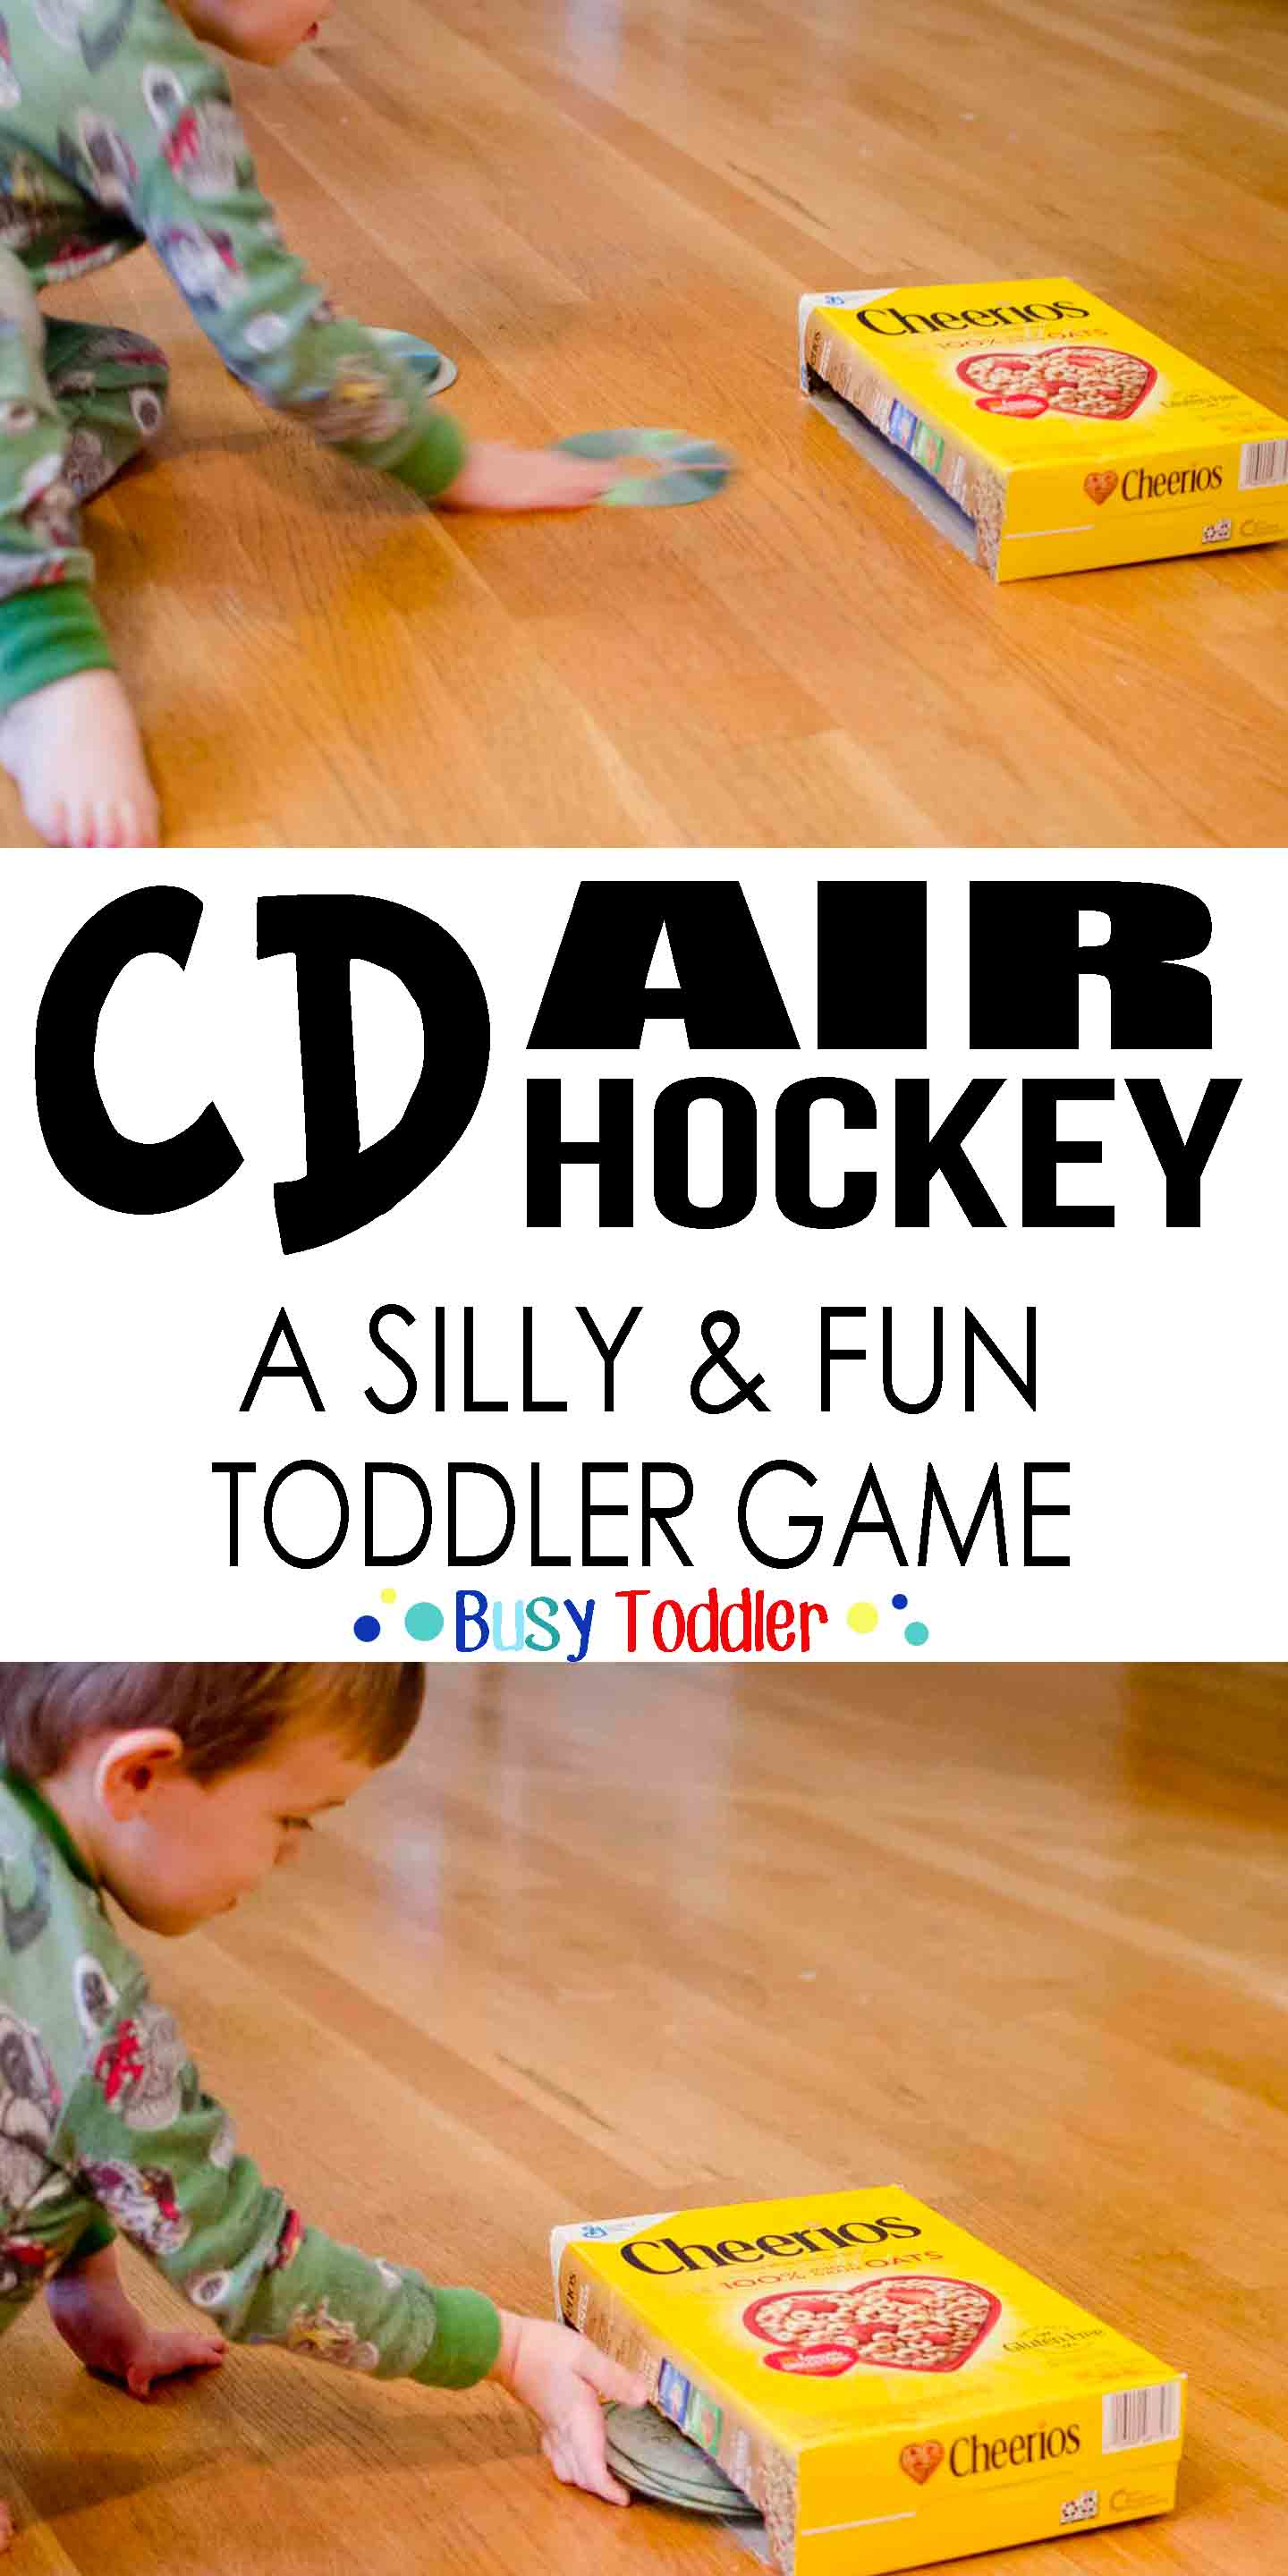 CD Air Hockey: A silly and fun toddler game.